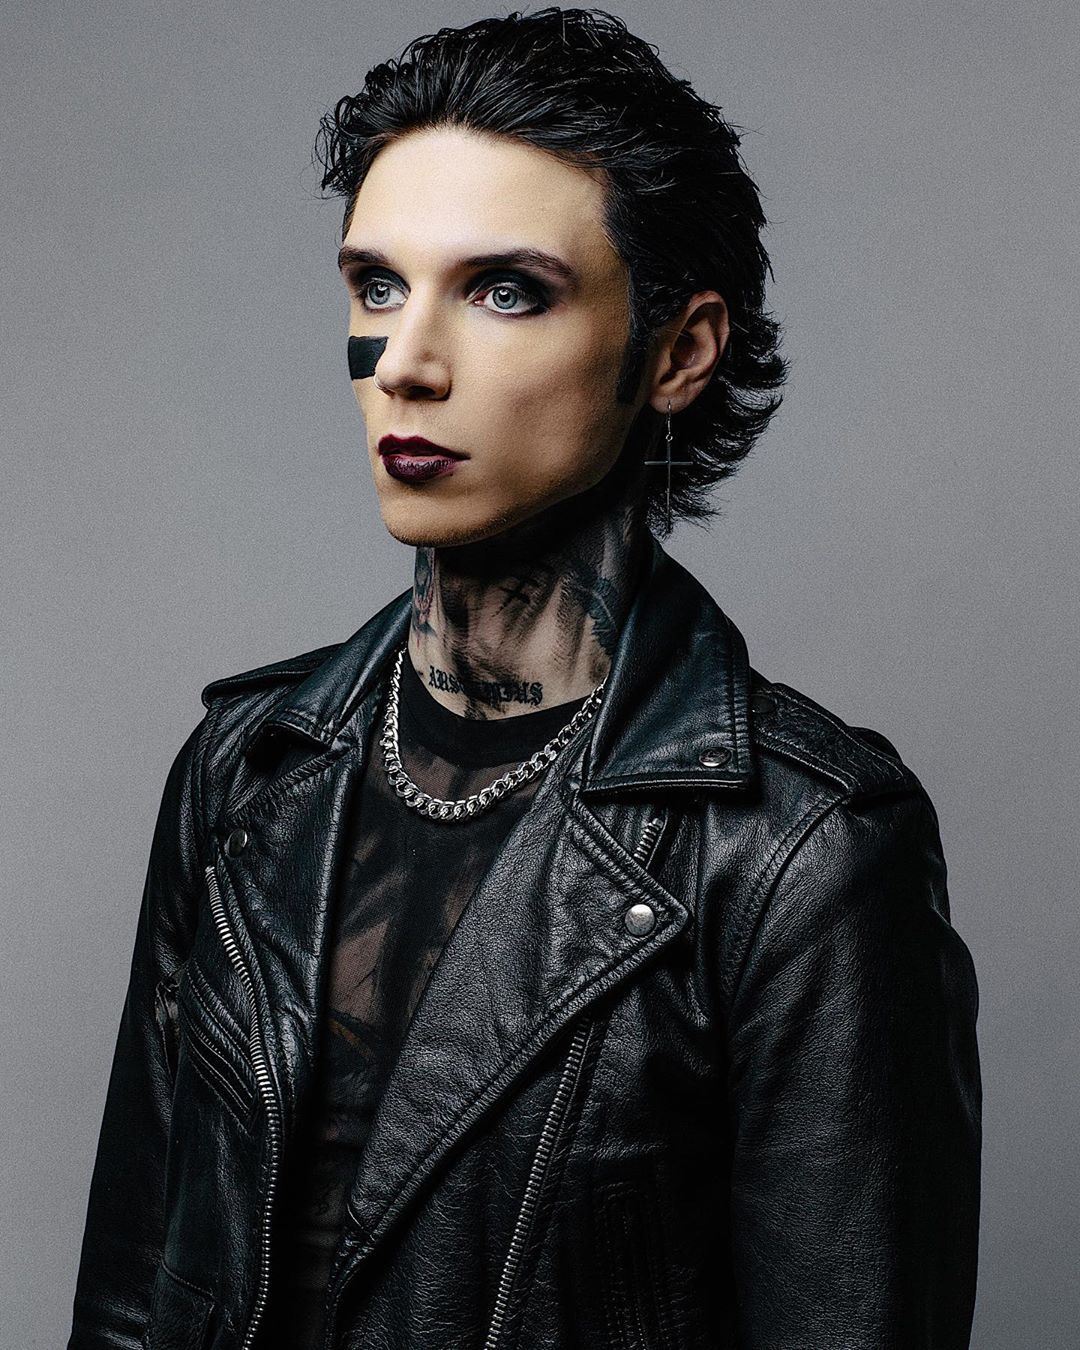 "Andy Biersack on Instagram: """"The Night"" out now! www ..."